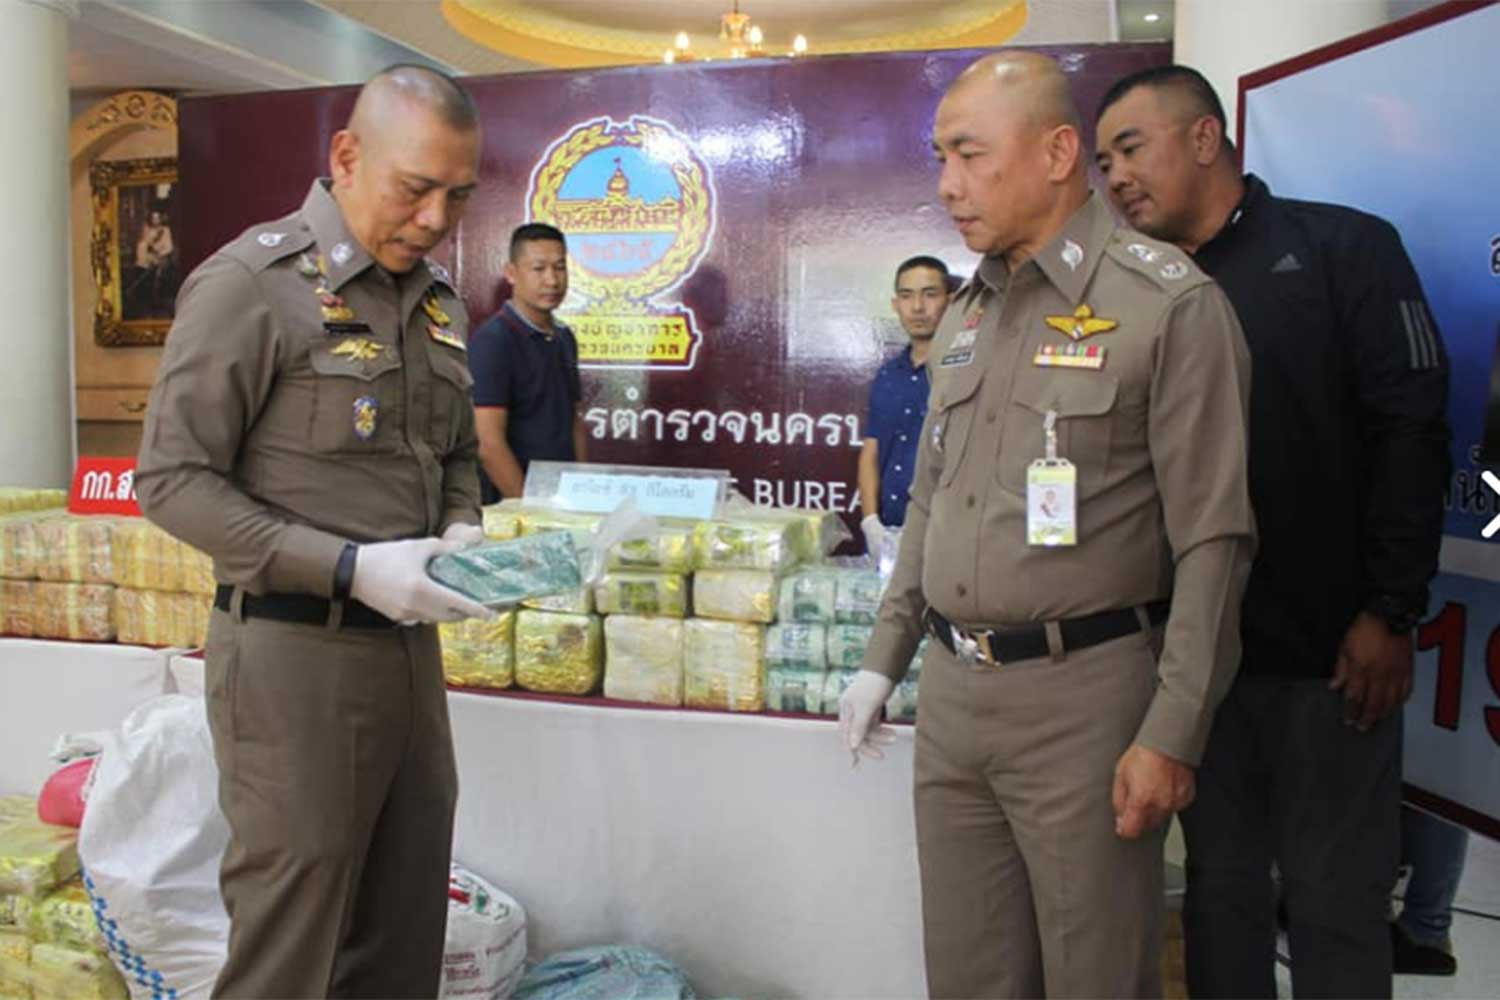 Pol Gen Chalermkiart Srivorakhan, deputy national police chief, (left), examines a package of seized illicit drugs during a news conference at the Metropolitan Police Bureau on Thursday. (Photo taken from @fm91trafficpro Facebook page)